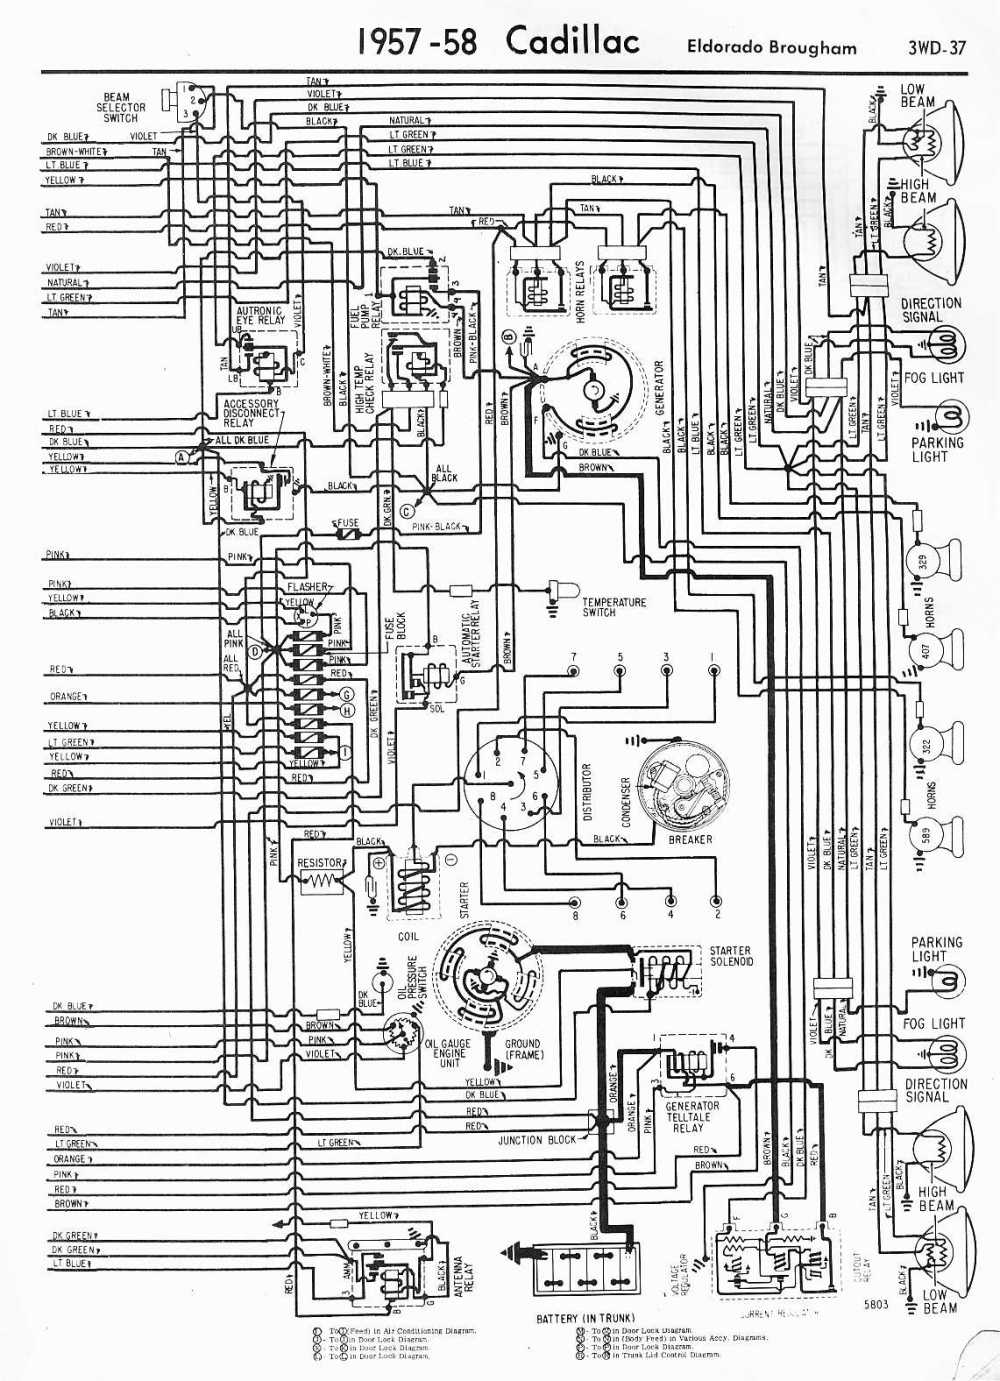 medium resolution of cadillac eldorado wiring diagram data diagram schematic cadillac eldorado wiring diagram